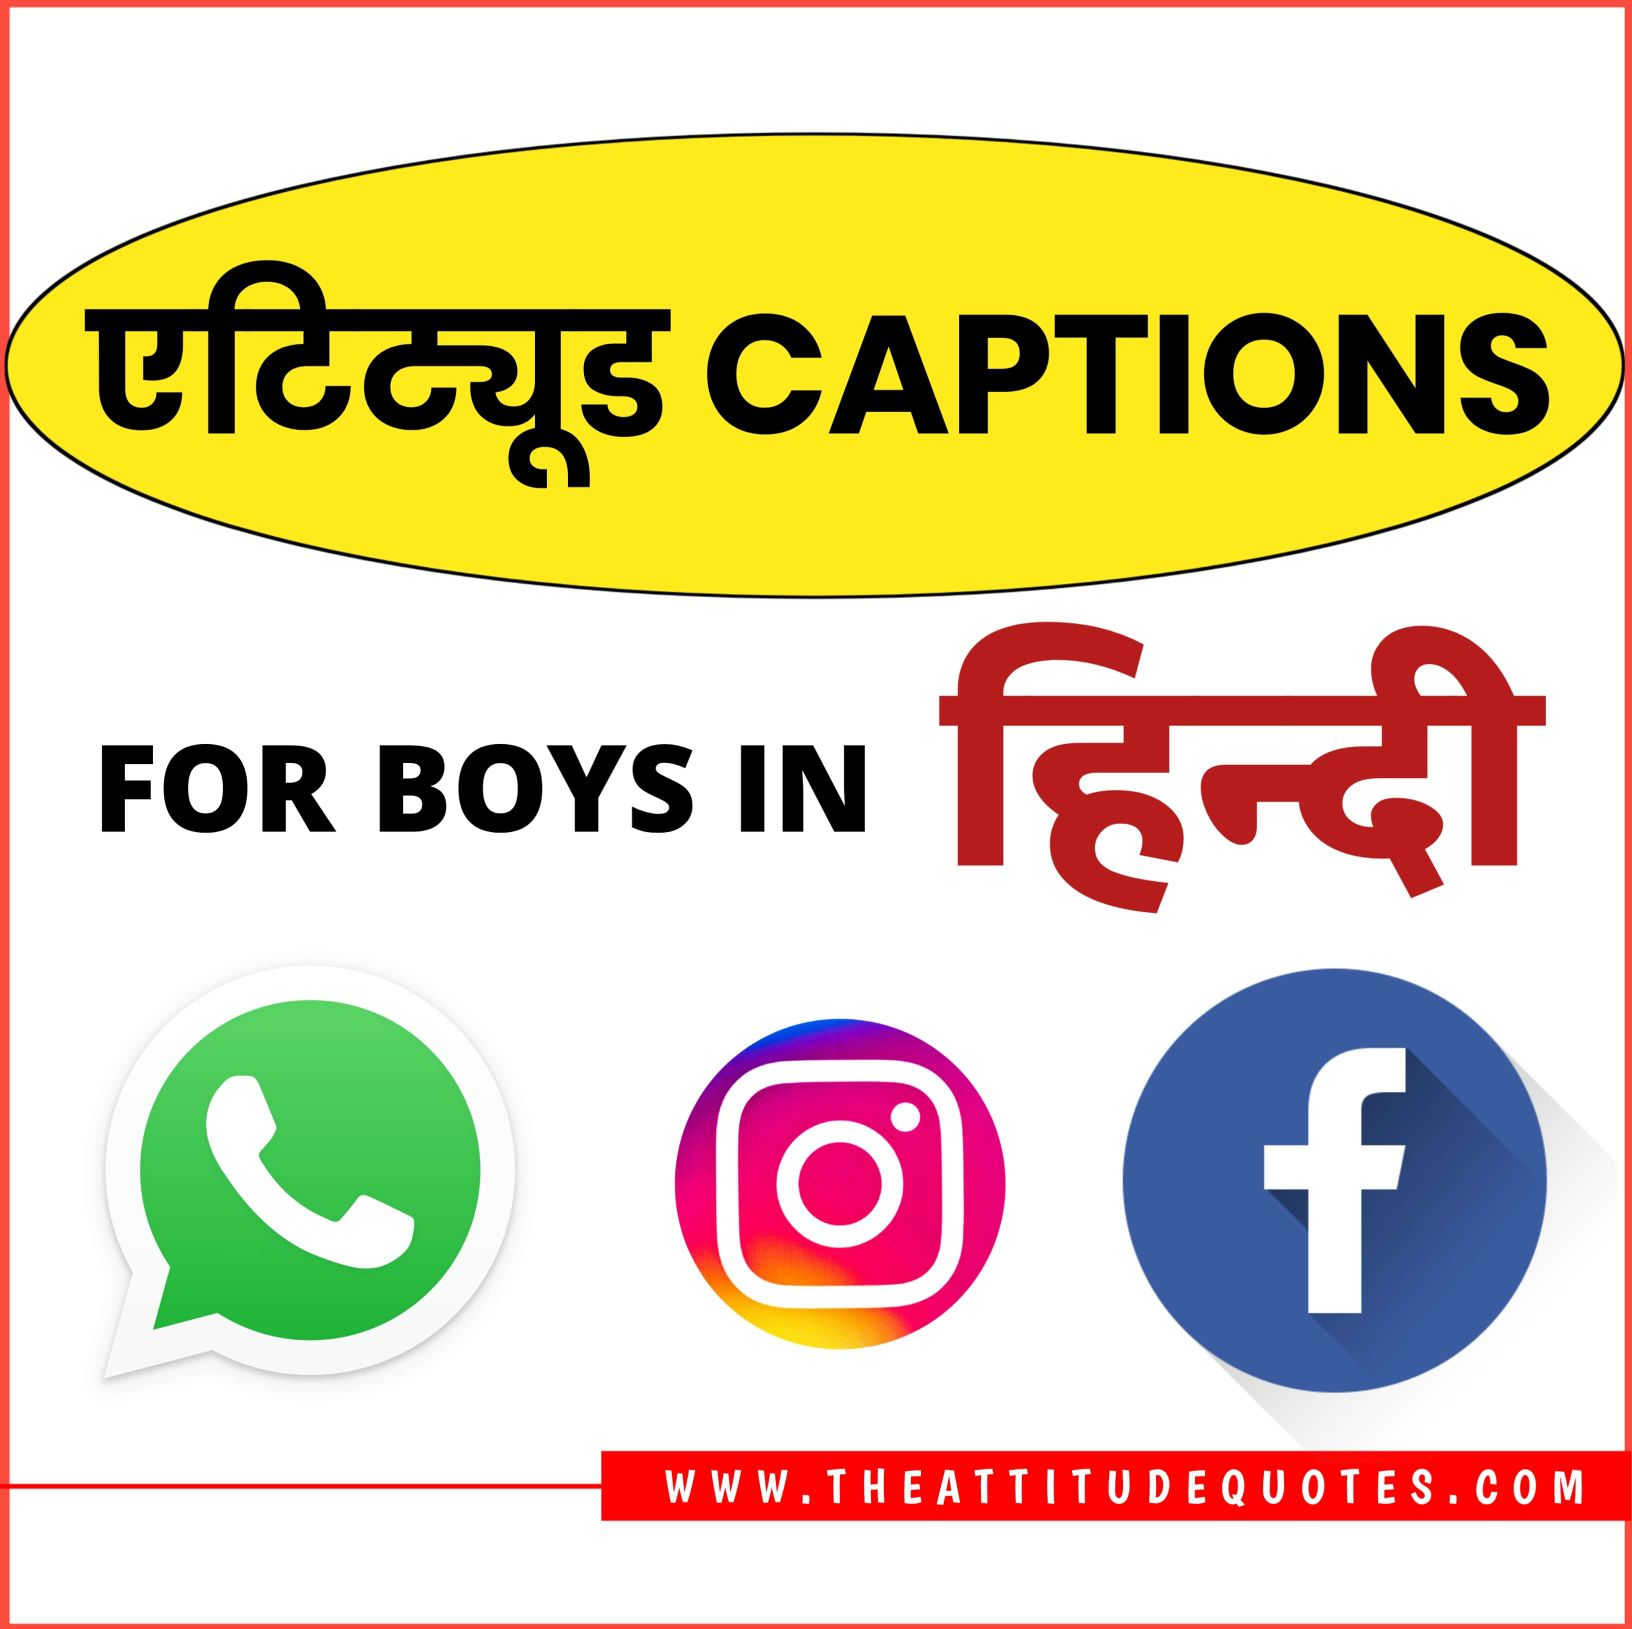 Hindi Attitude Caption, Attitude Caption In Hindi, Attitude Caption For Instagram In Hindi, Instagram Status In Hindi, Attitude Caption For Boys In Hindi, Hindi Captions For Instagram In Hindi, Fb Caption In Hindi, Attitude Caption Hindi, Instagram Status Hindi English, Love Attitude Quotes In Hindi, Attitude Friendship Quotes In Hindi, Instagram Status In Hindi For Boys, Caption For Fb In Hindi, Instagram Status In Hindi For Boy Attitude, Hindi Caption For Fb, Attitude Wala Caption, Attitude Status For Instagram In Hindi, Attitude Caption For Boys Hindi, Instagram Attitude Status In Hindi, Attitude Hindi Caption, Best Attitude Caption In Hindi attitude quotes for boys, attitude caption for boys, attitude status for boys in hindi, bad boy status, cute boy status in hindi, cool status for boys, single boy status, fb status for boys, whatsapp dp for boys attitude, attitude caption for boys in hindi, status for boys in hindi, best attitude quotes for boys, attitude status for boys in hindi, swag status for boys, best attitude status for boys, bad boy status in hindi, handsome boy status for whatsapp, royal status for boys, attitude quotes for boys in hindi, attitude status hindi for boy, english attitude status for boys